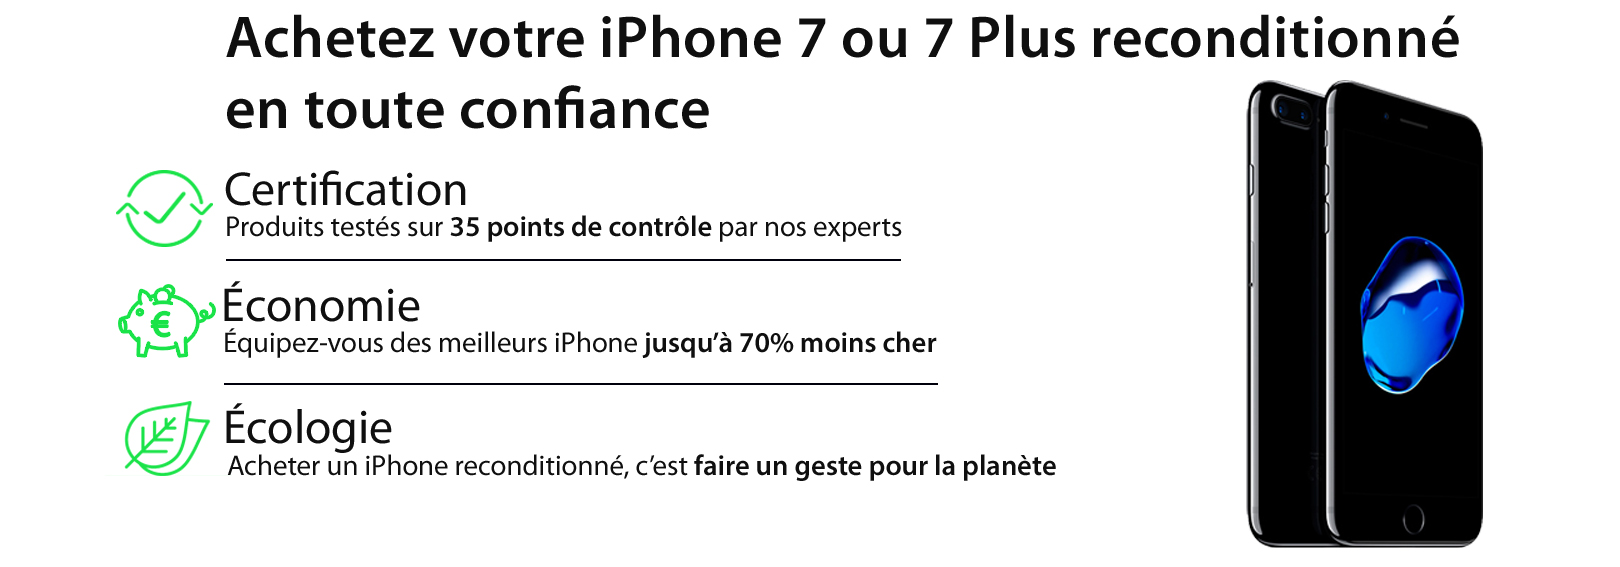 iphone 7 & iphone 7 plus reconditionné